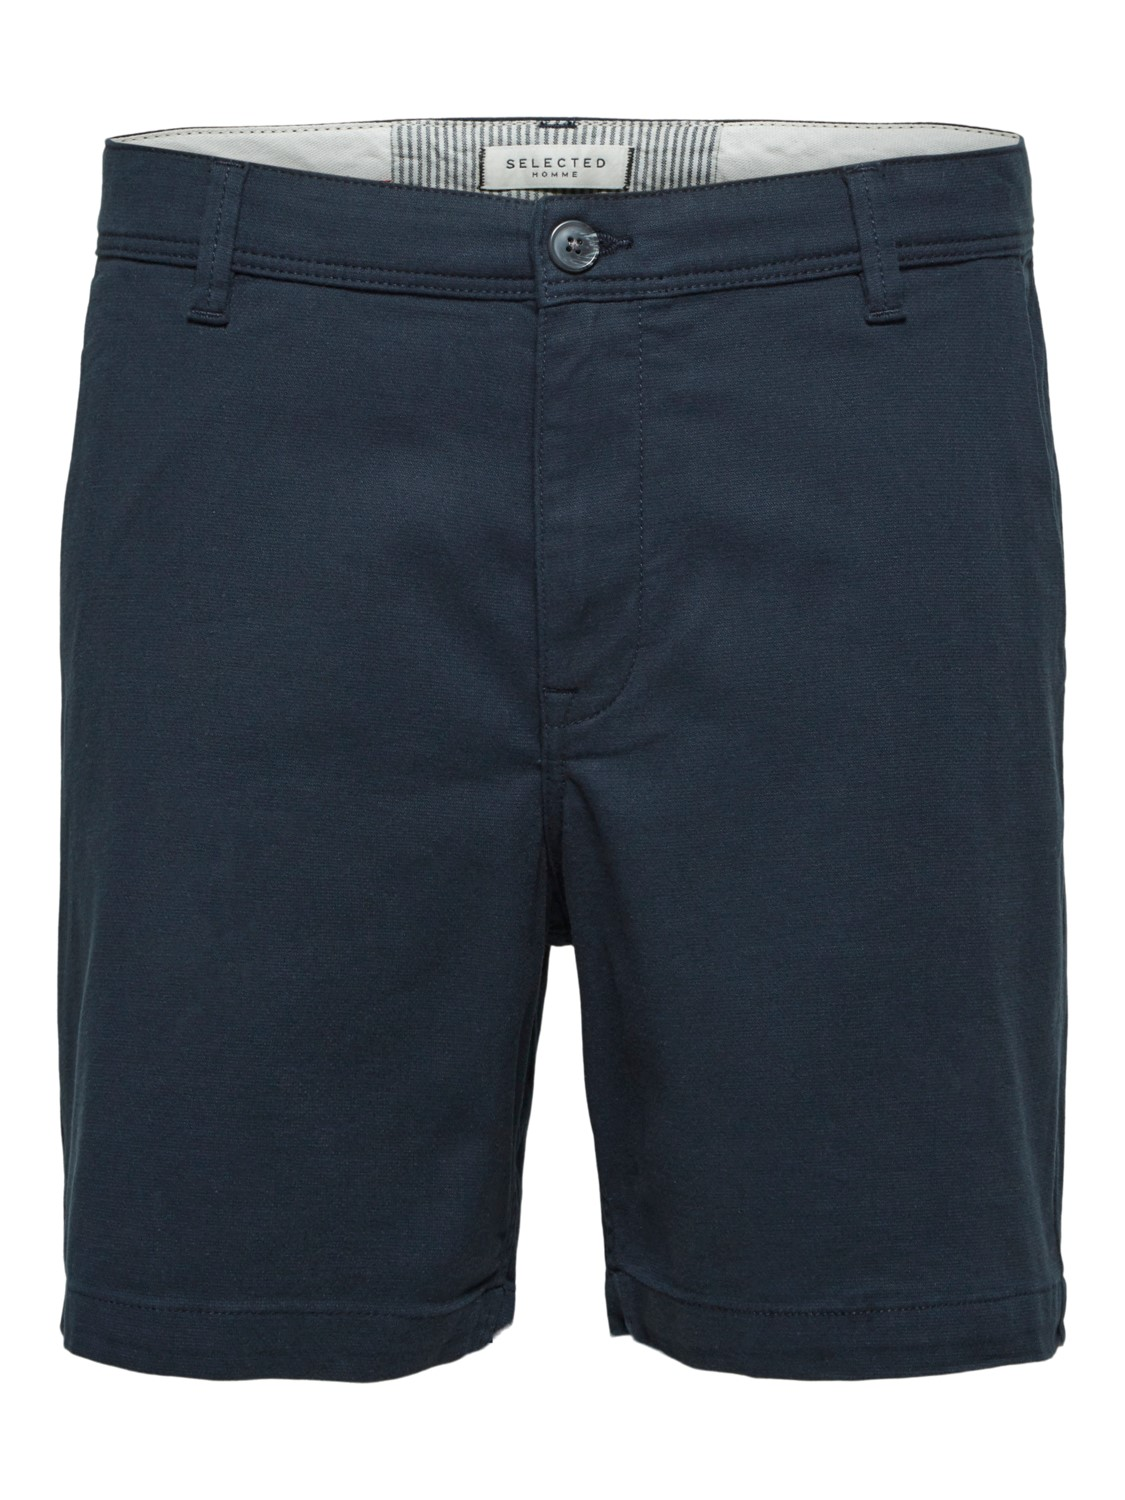 SELECTED SLHSTORM FLEX SHORTS Navy | GATE 36 Hobro